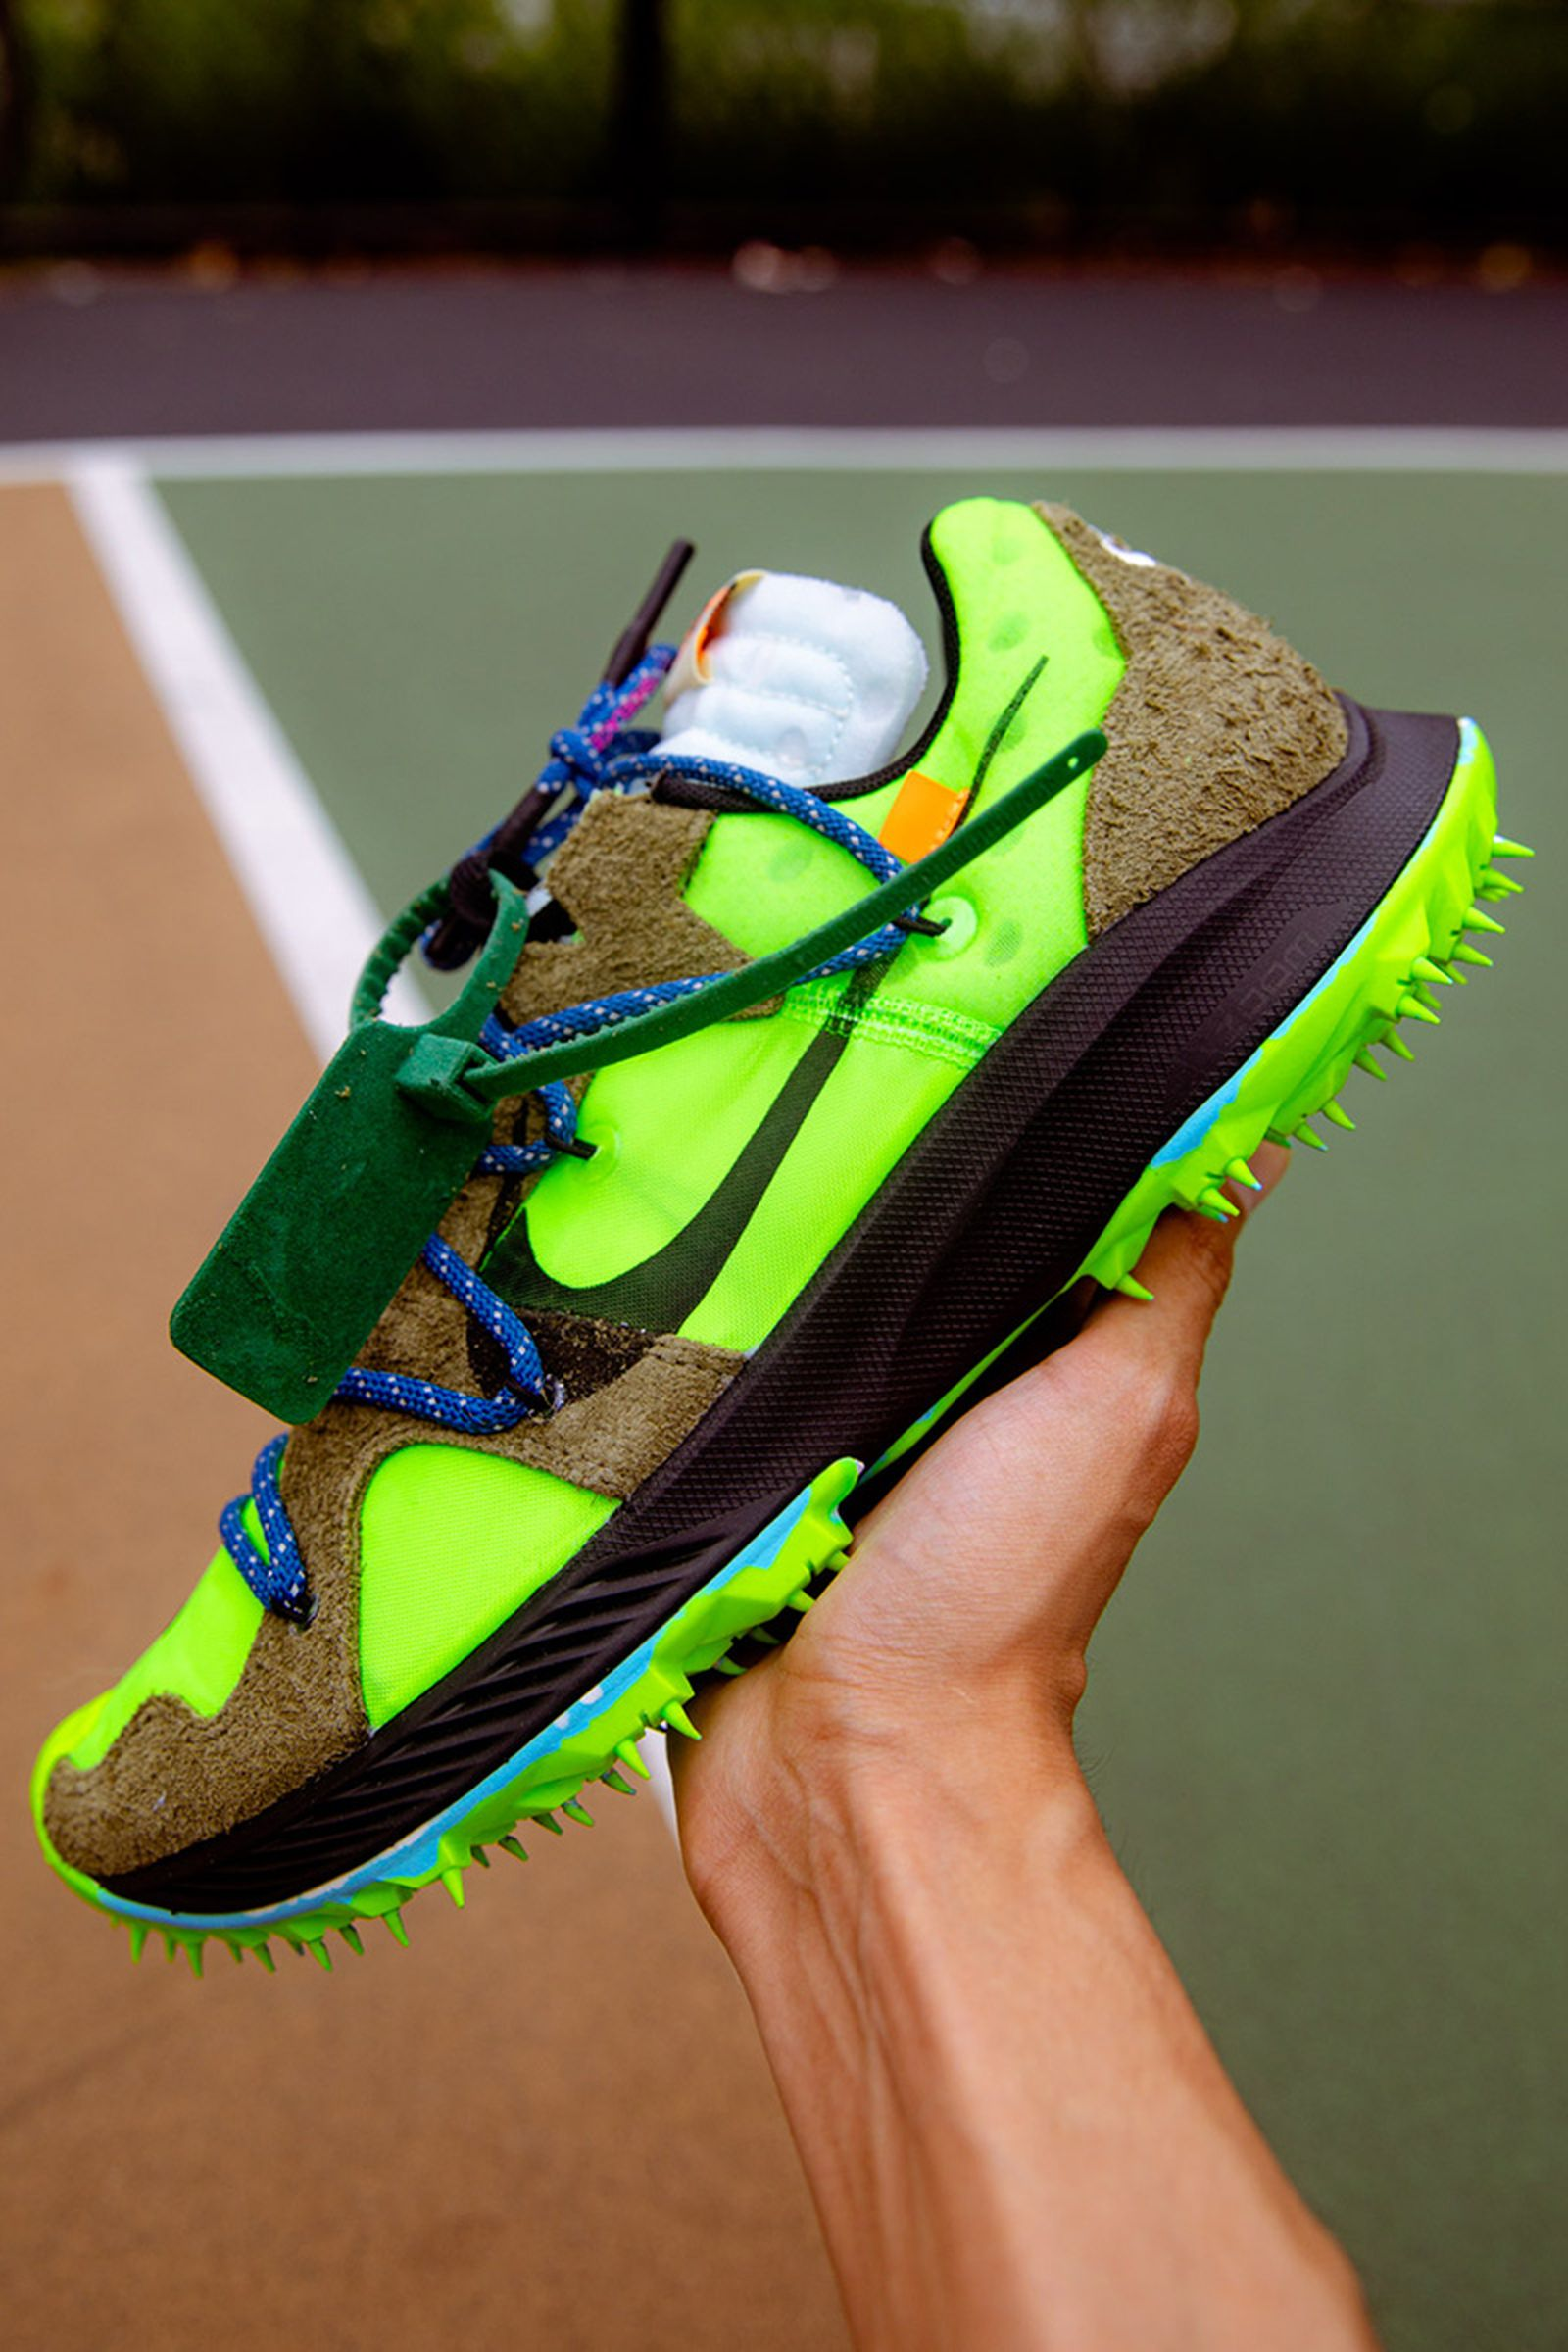 off white nike zoom terra kiger 5 release date price closer look OFF-WHITE c/o Virgil Abloh